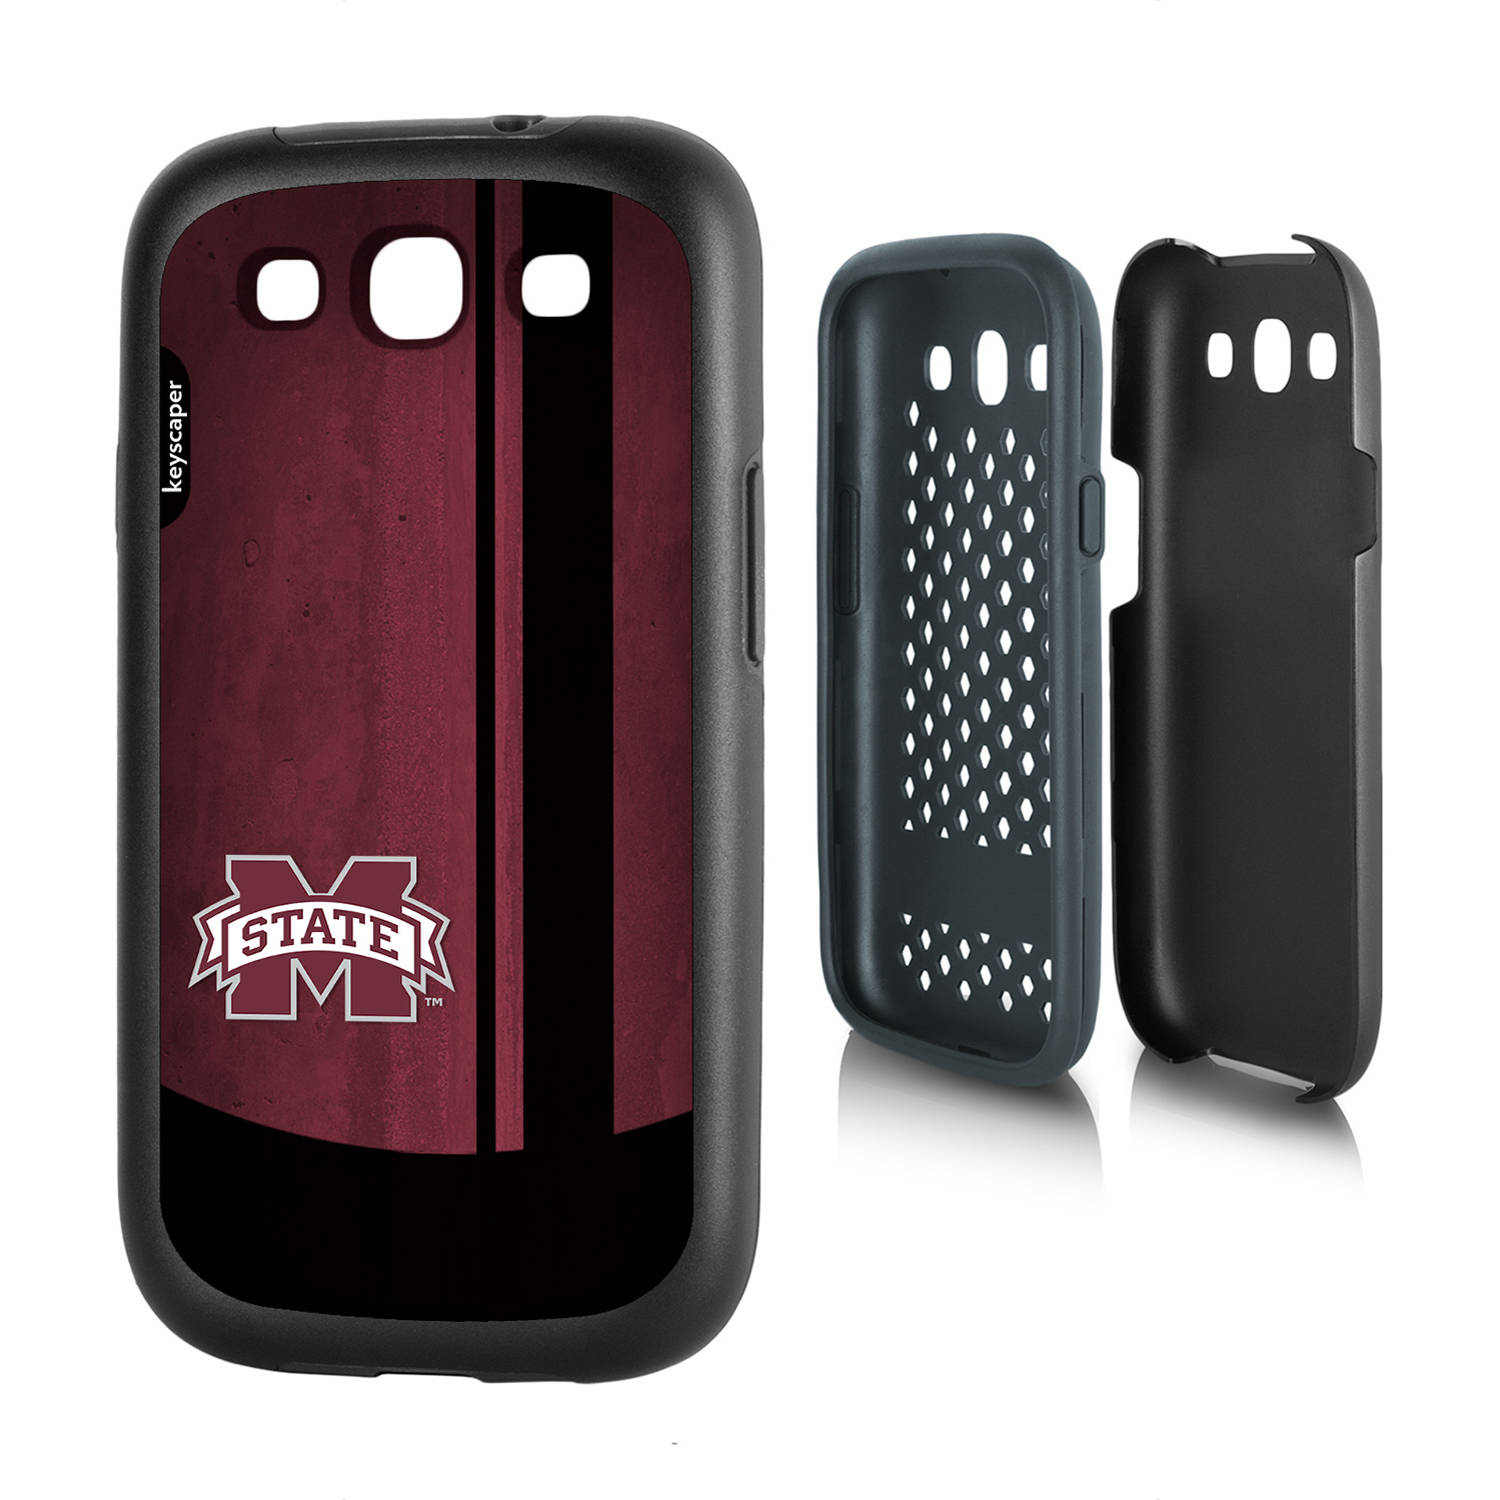 Mississippi State Bulldogs Galaxy S3 Rugged Case